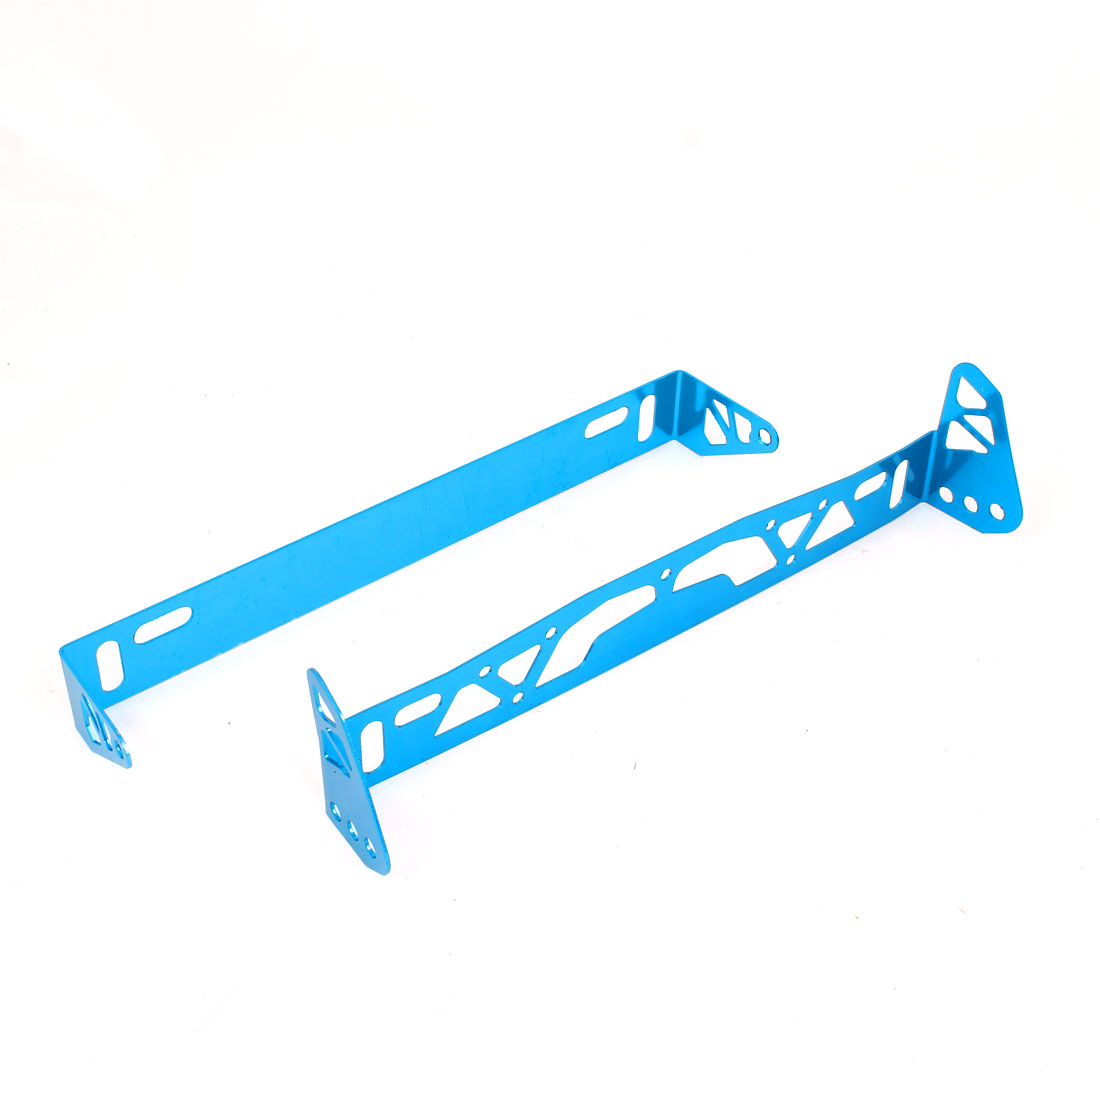 Vehicle Car Blue Metal Plate Bracket Support for 93x370mm License